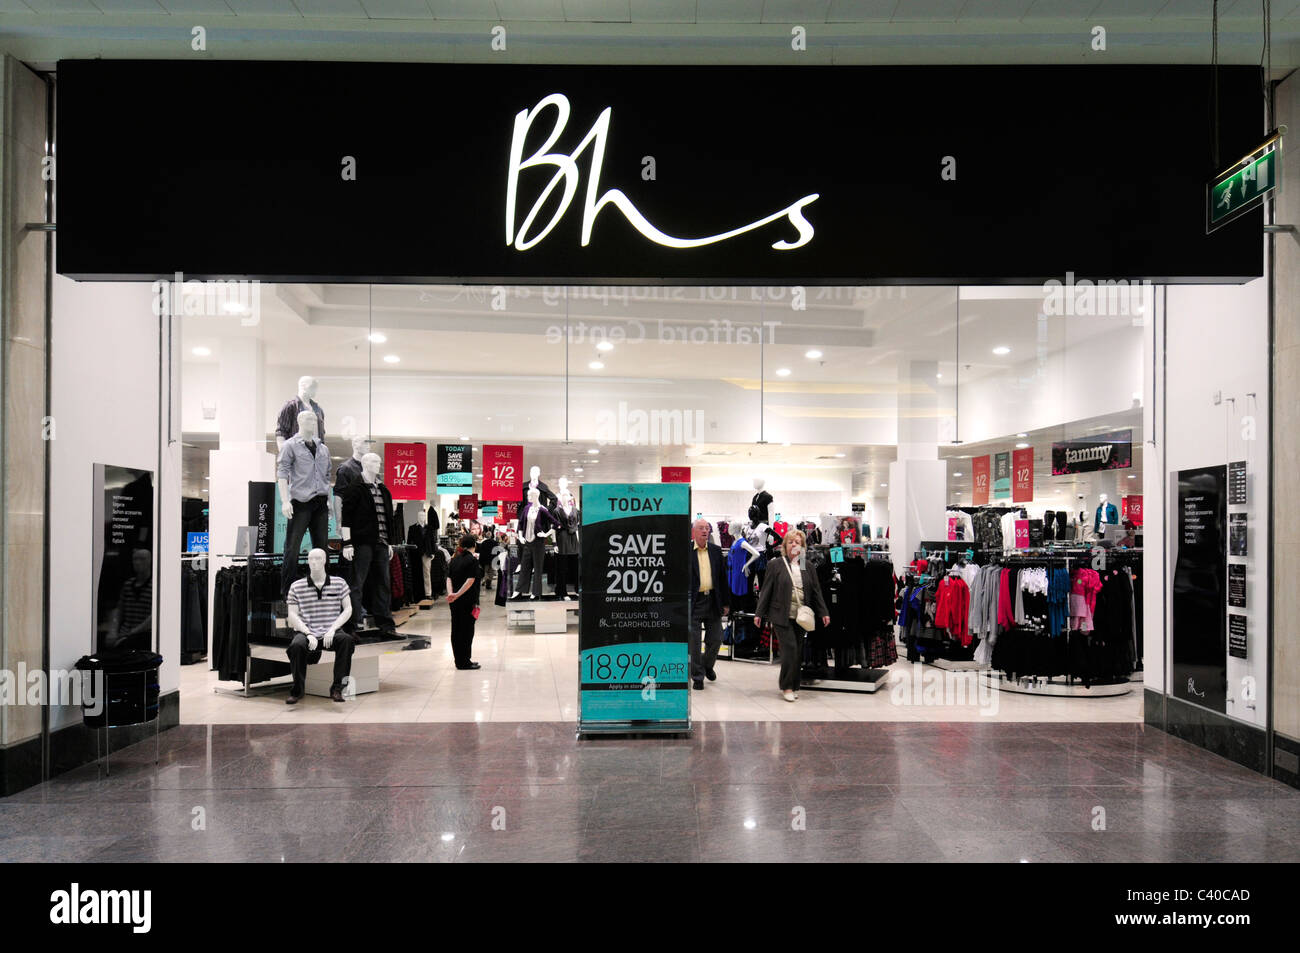 b h s bhs british home stores clothes garment woman womans bhs bob the builder christmas to remember bhs #10